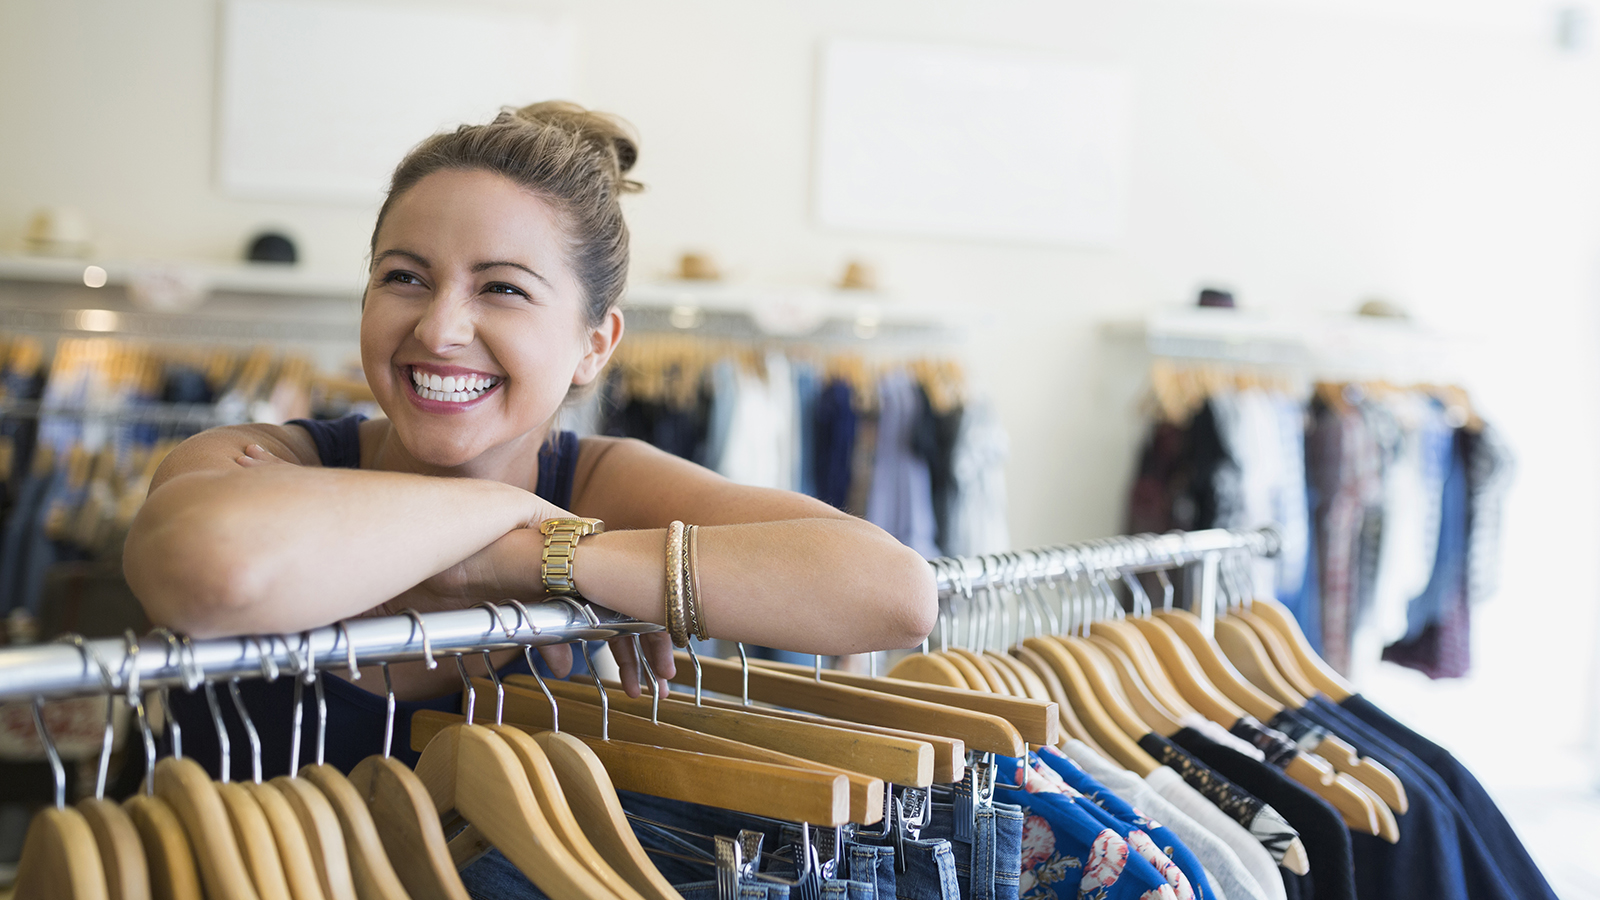 A woman traveler smiling in an apparel shop.